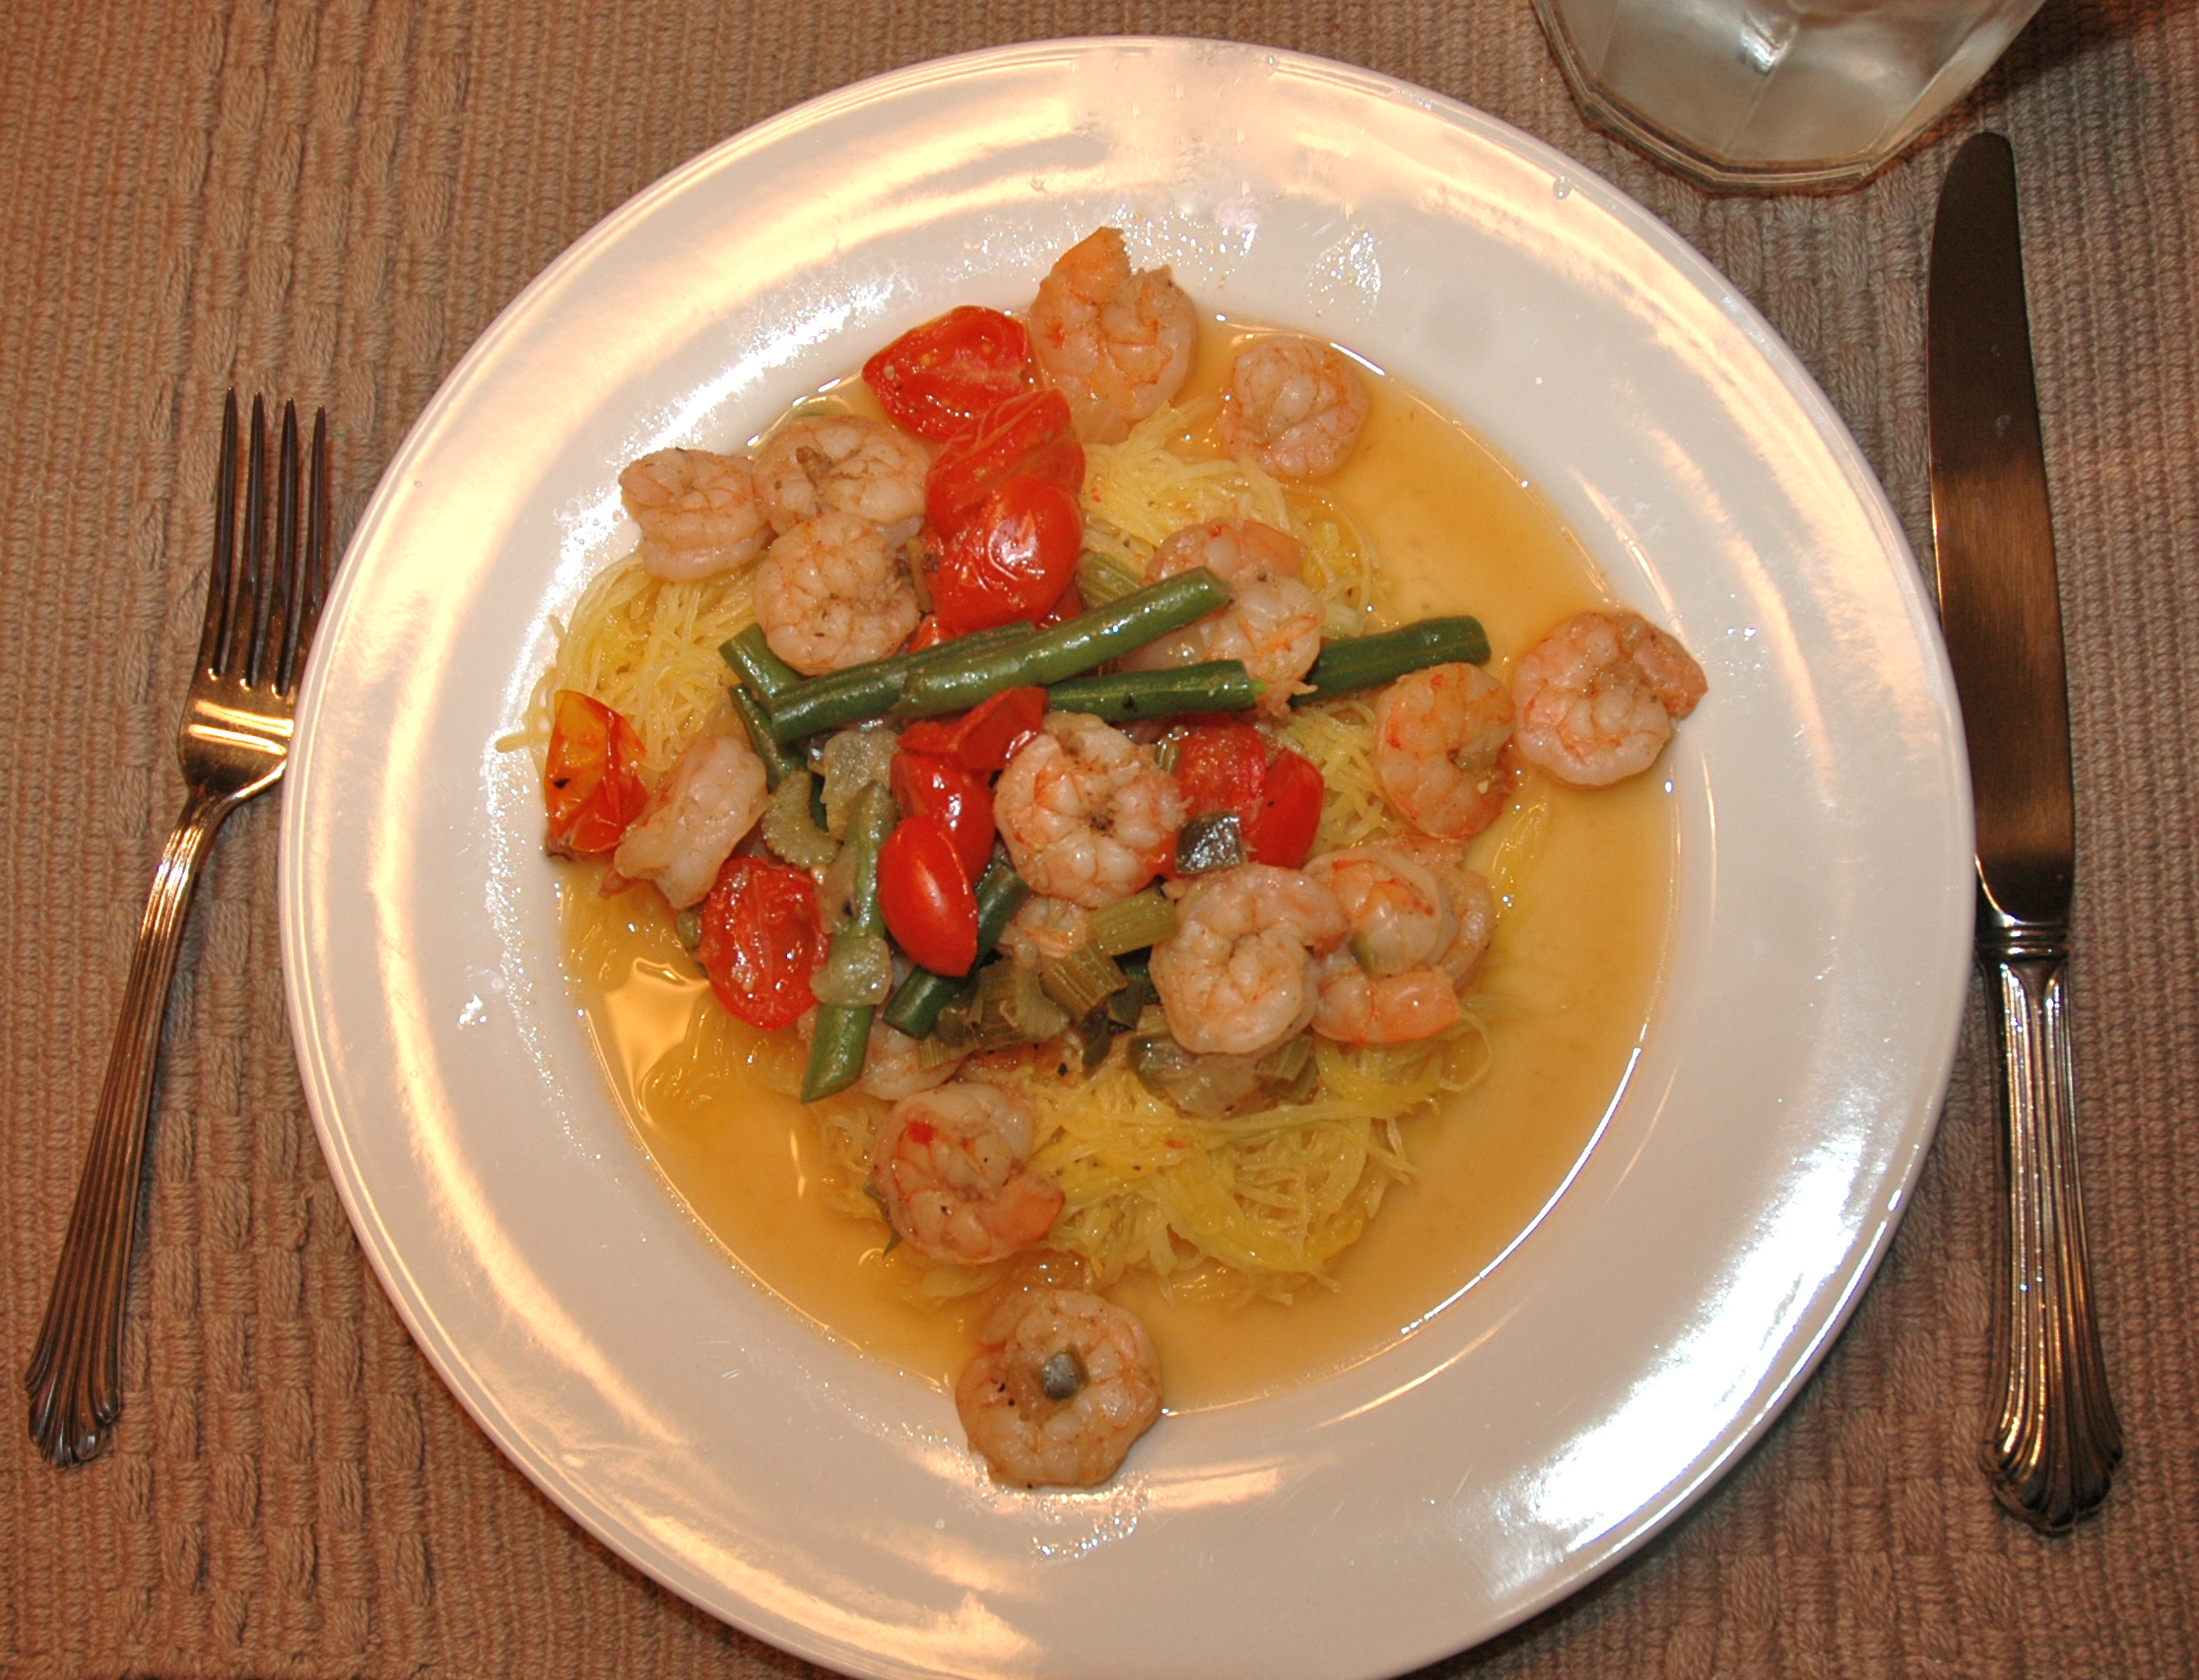 Shrimp on a set of spaghetti squash and veggies in clarified butter sauce.